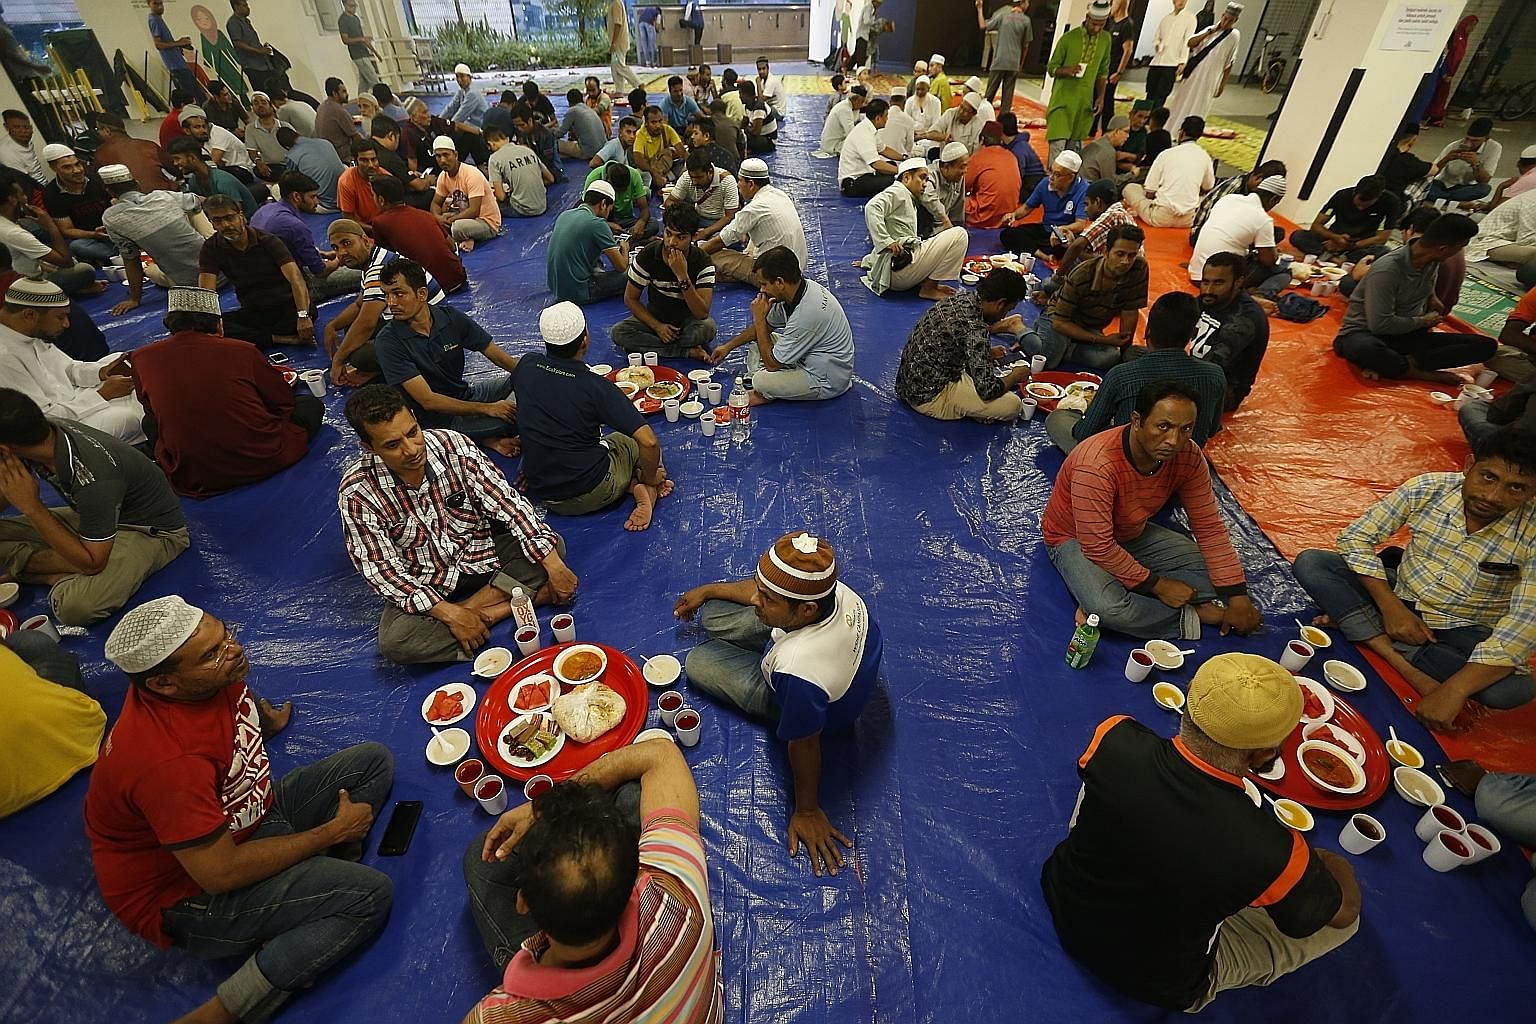 Though more than 200 migrant workers break their fast at the Yusof Ishak mosque every day, yesterday marked the first time workers were formally invited to the mosque in Woodlands. Invitations were sent out to them in Bengali, Tamil and Hindi. The ev